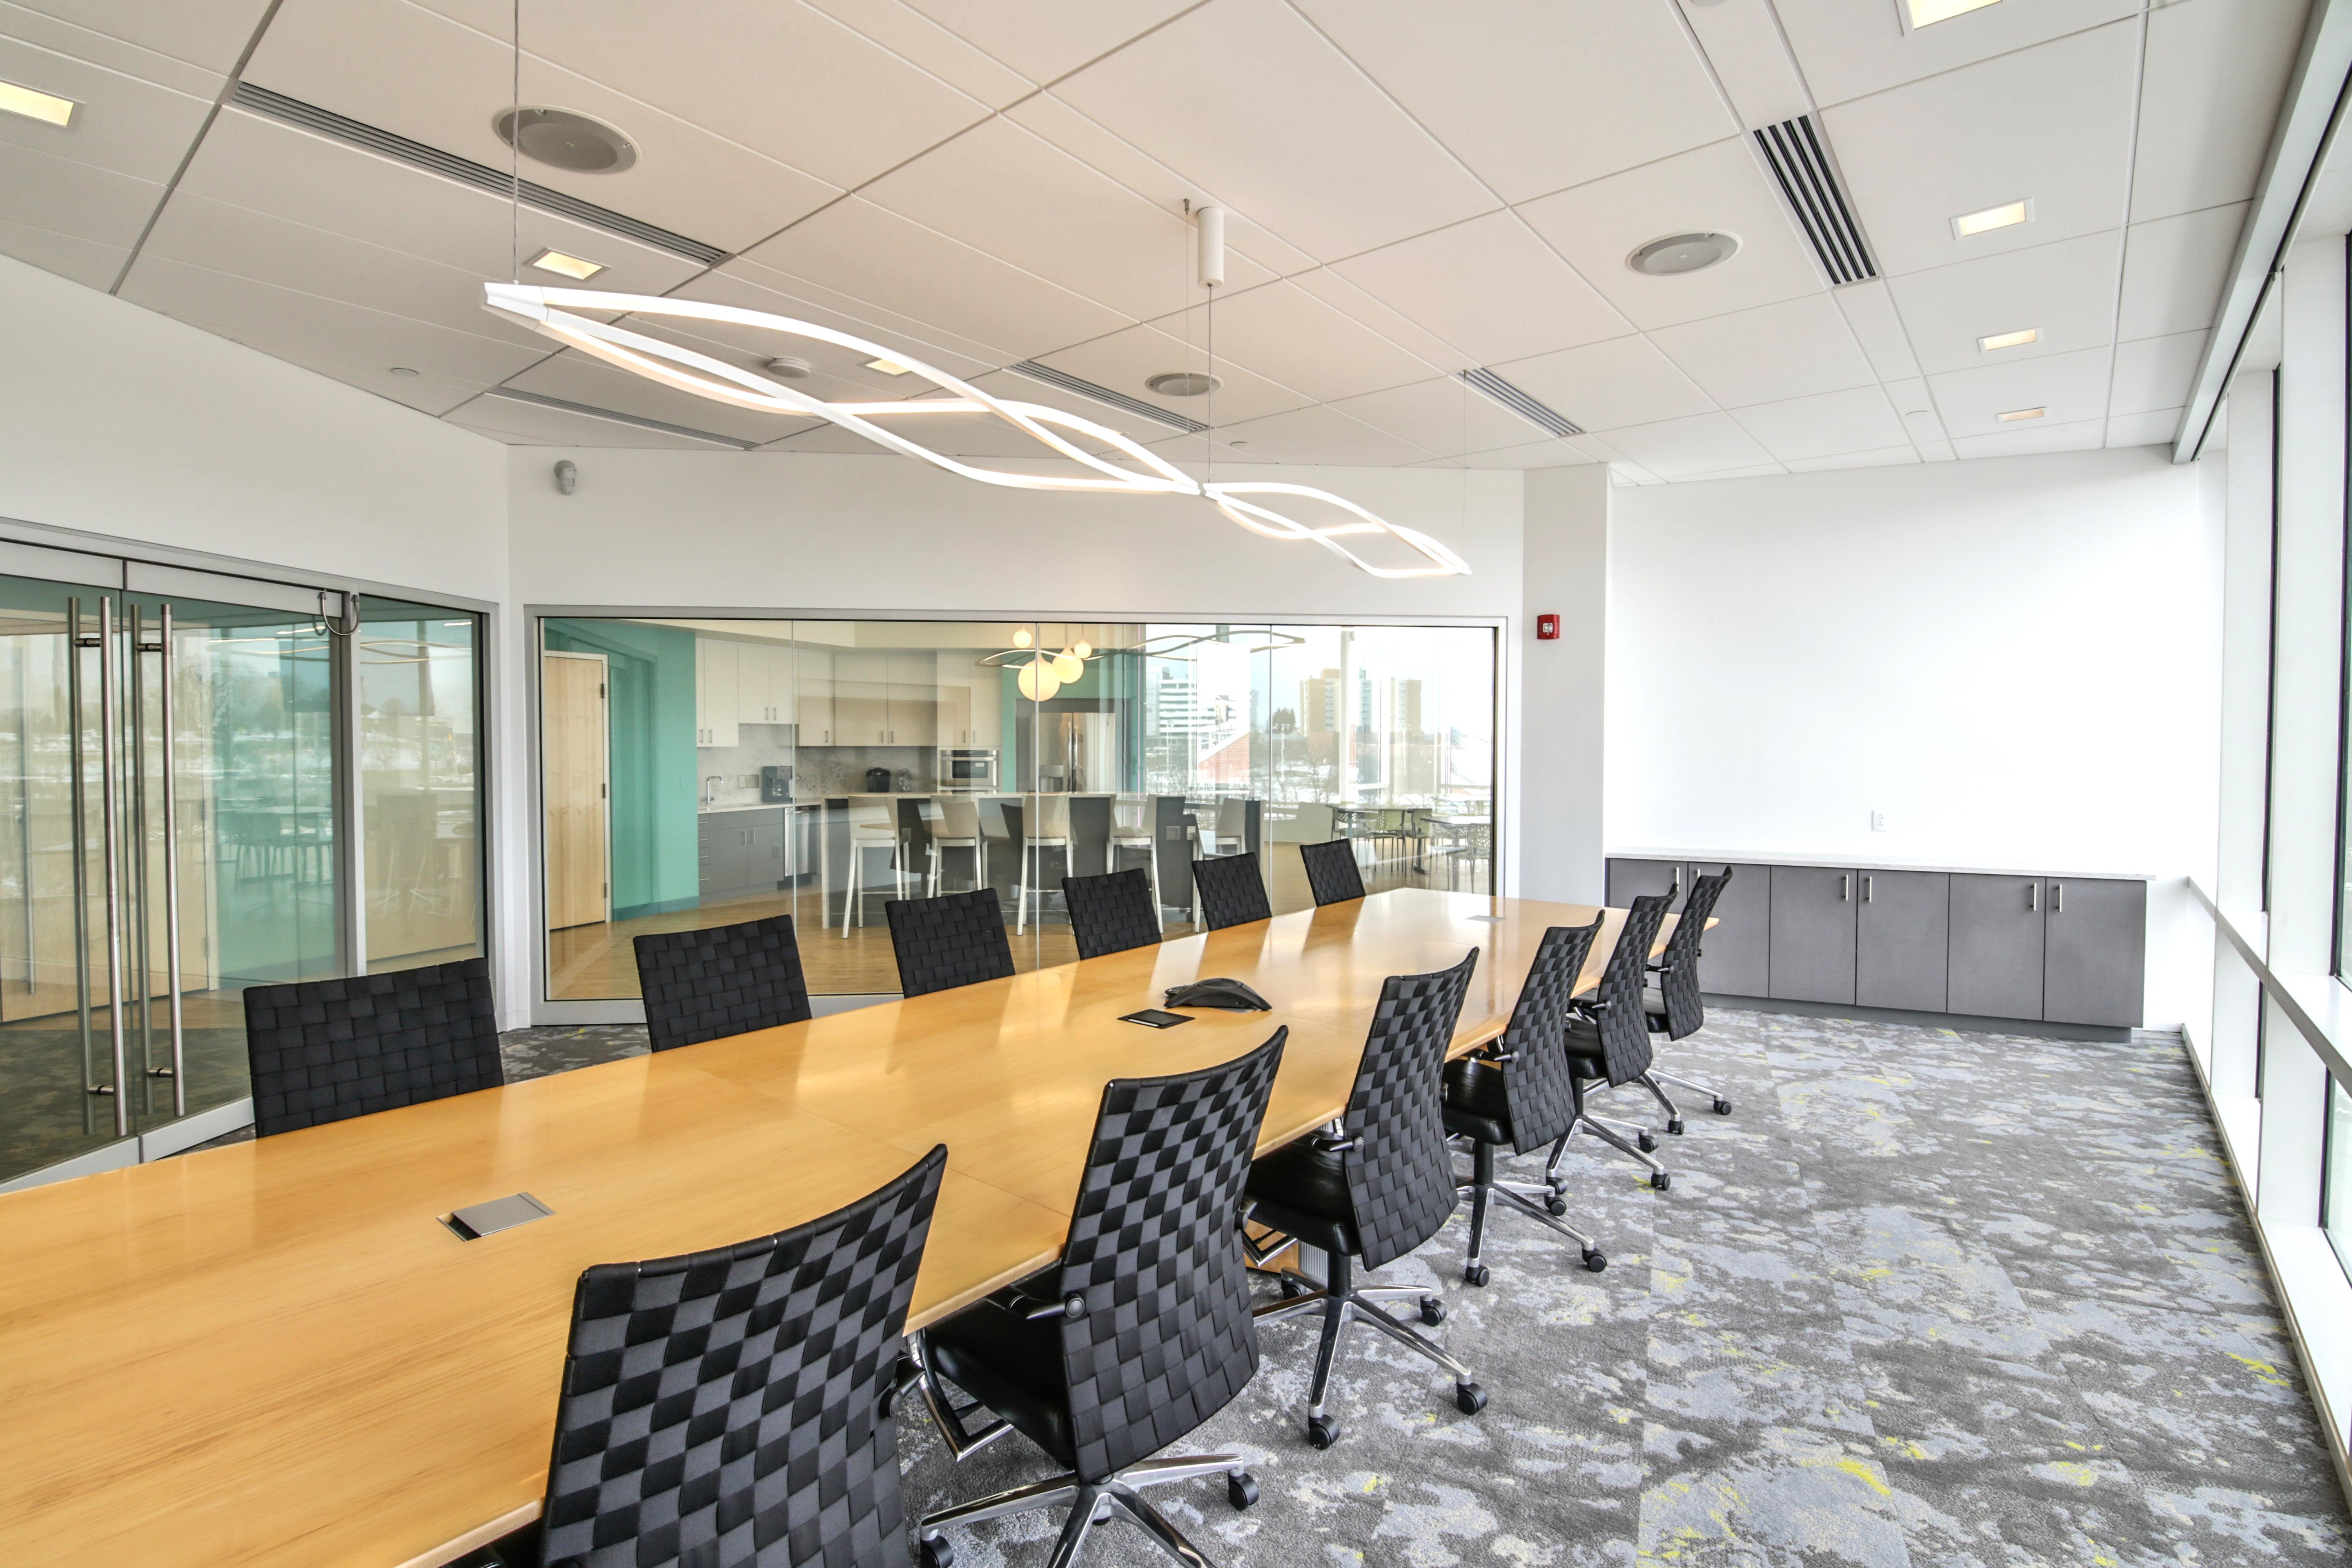 Burns Scalo Real Estate - Large Conference Room